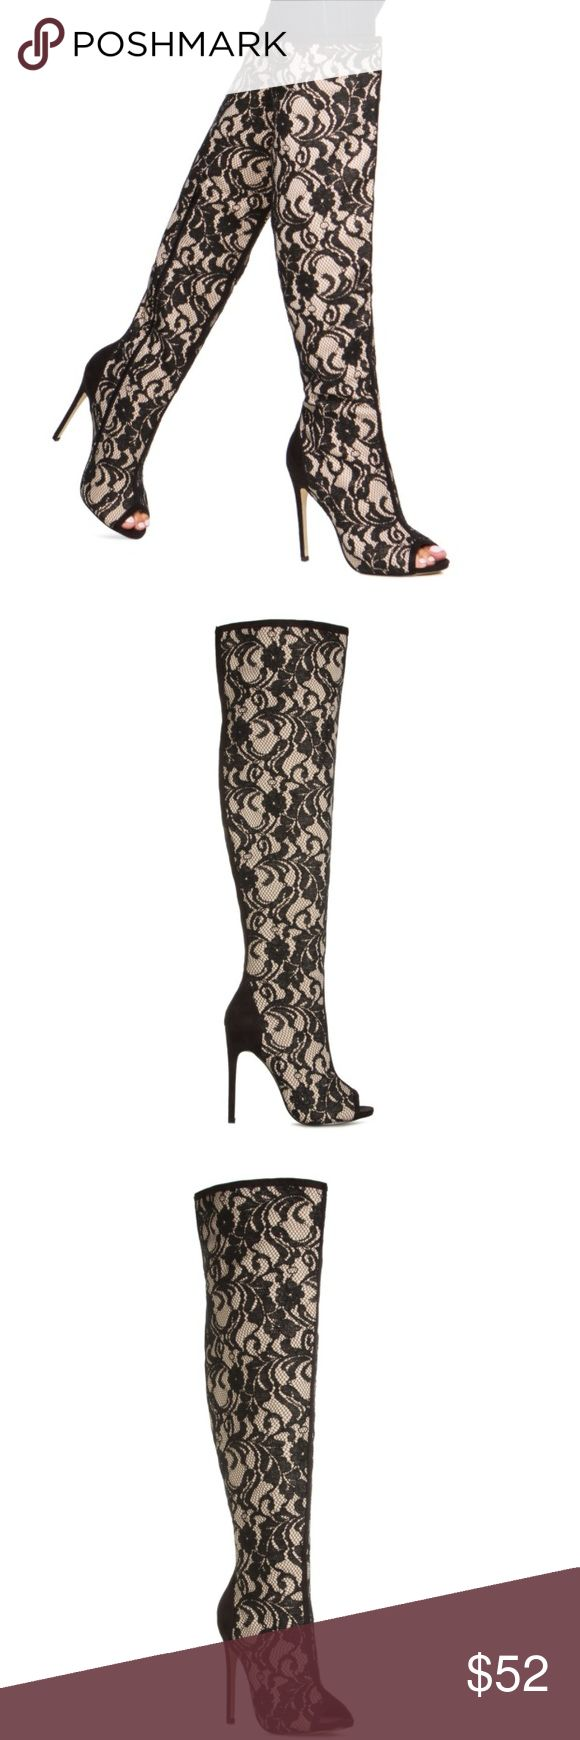 Thigh High Black White Lace Boots Peep Toe Size 7 Gorgeous New Without Box Never Worn Madison By ShoeDazzle Black And White Lace Thigh High Boots. Stiletto Heel. Size 7. Peep Toe Front. Shoe Dazzle Shoes Over the Knee Boots